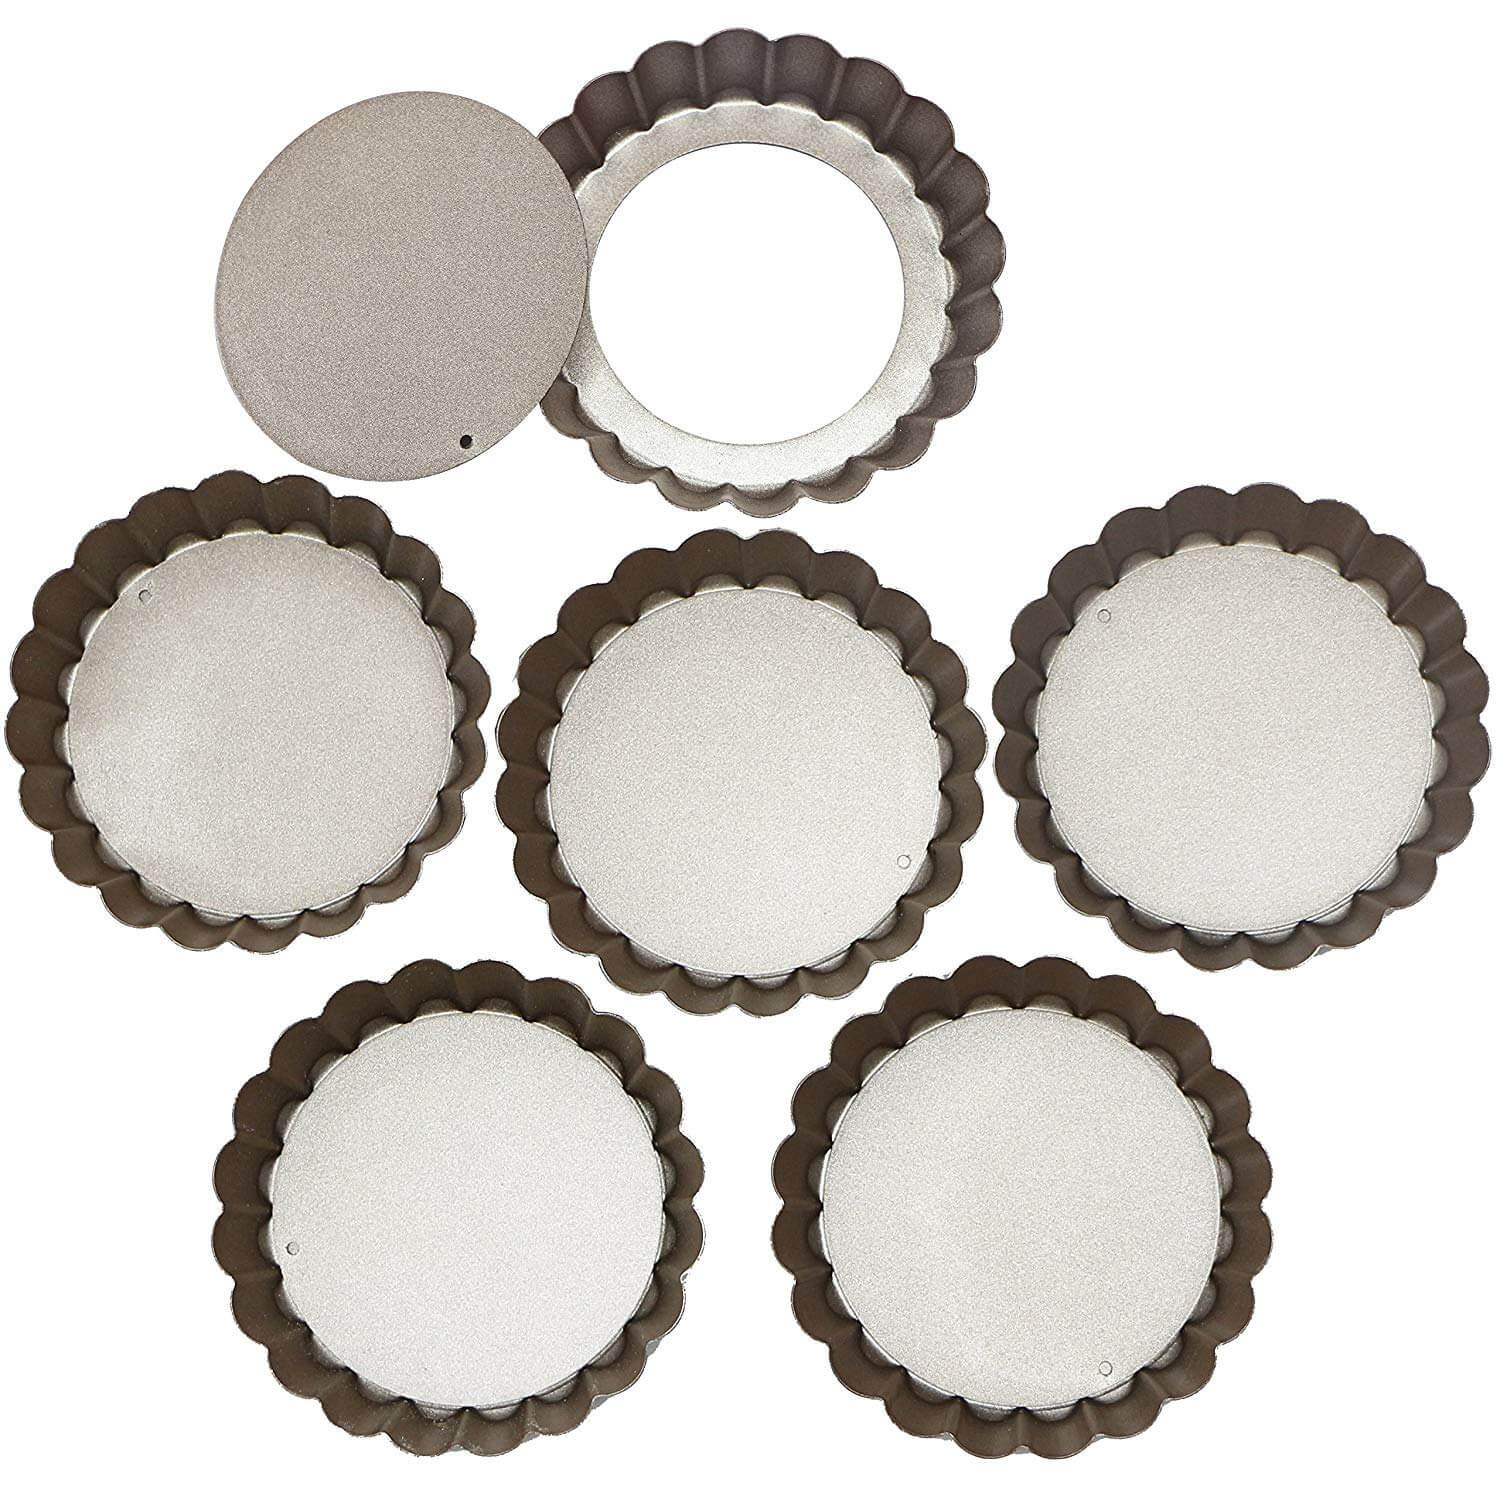 Webake 4 Inch Quiche Pans Removable Bottom Mini Tart Pans